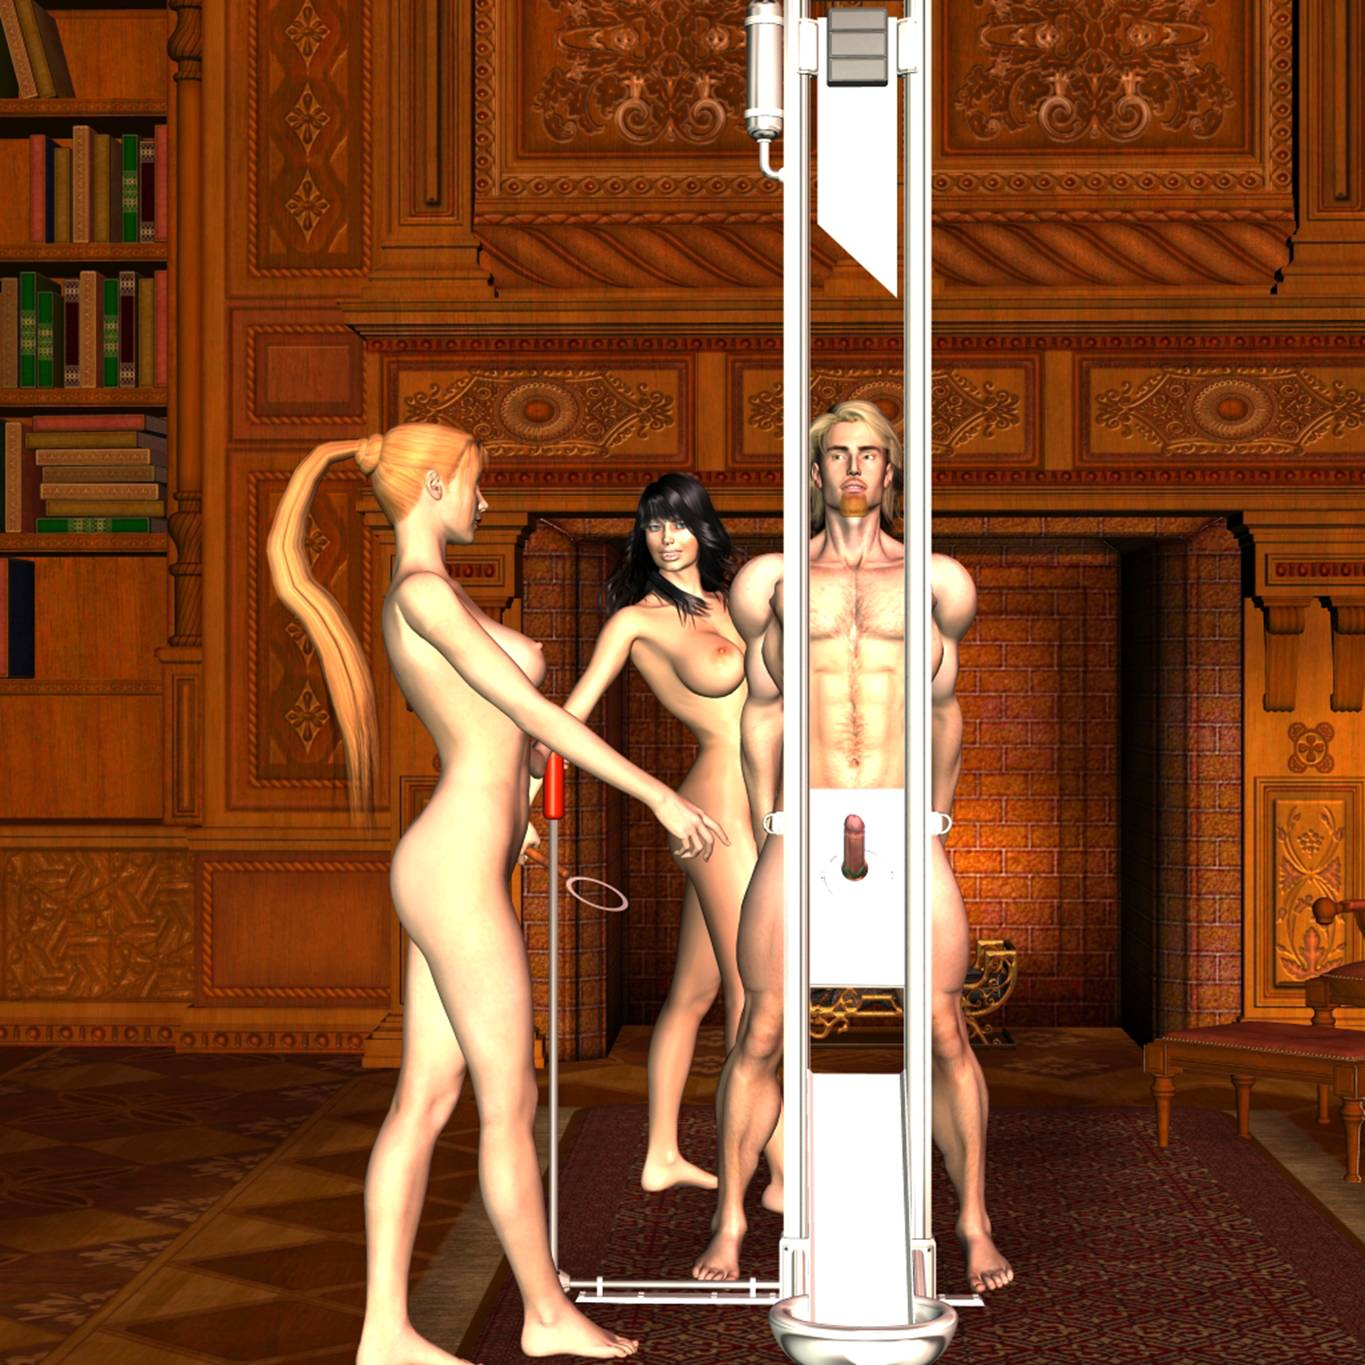 Guillotine erotic fiction exploited videos